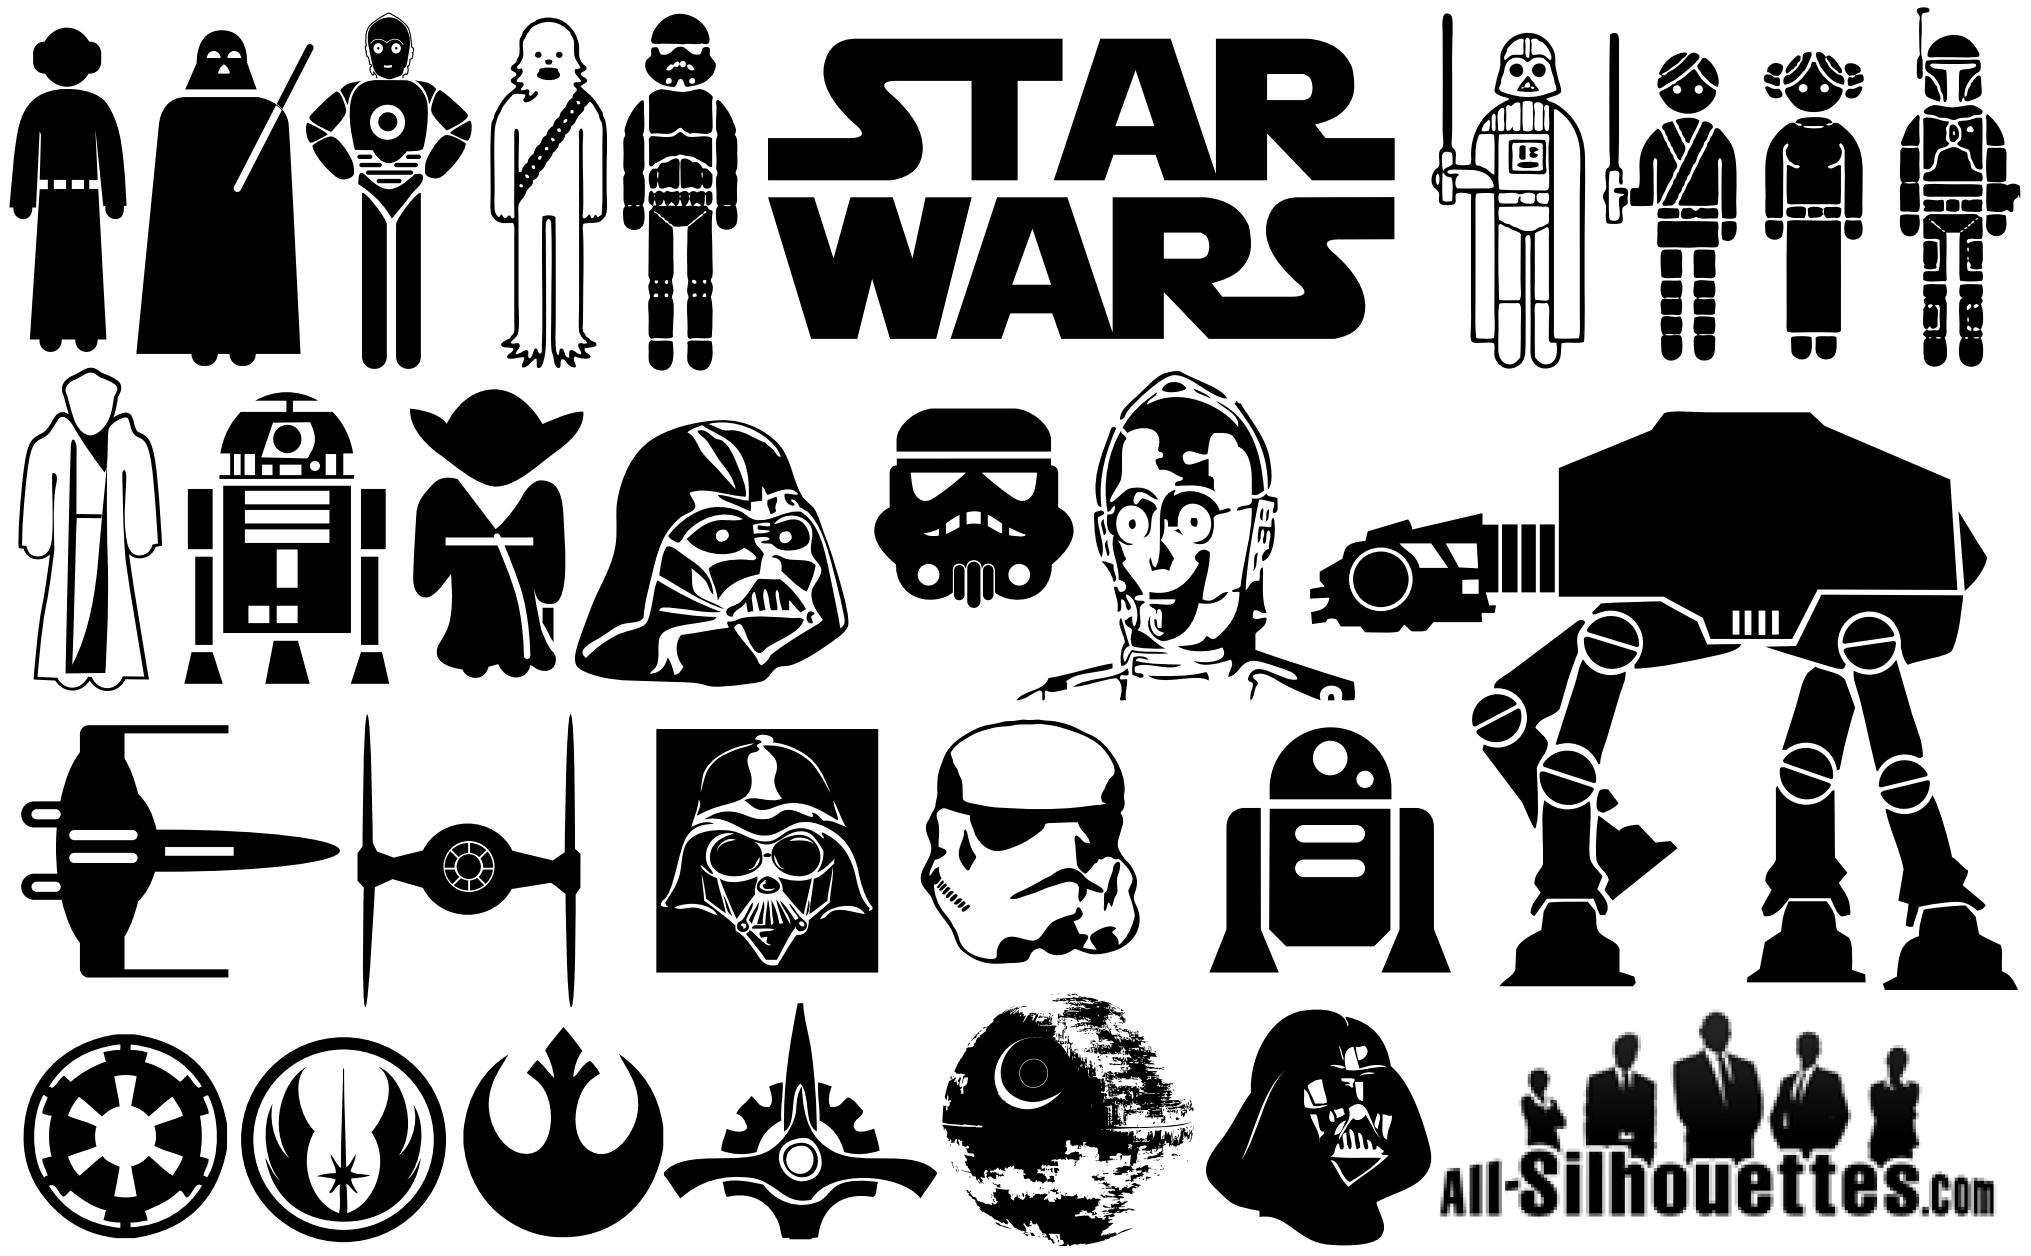 Star wars symbol silhouettes vector eps free download logo icons starwarssymbolsilhouettes biocorpaavc Images